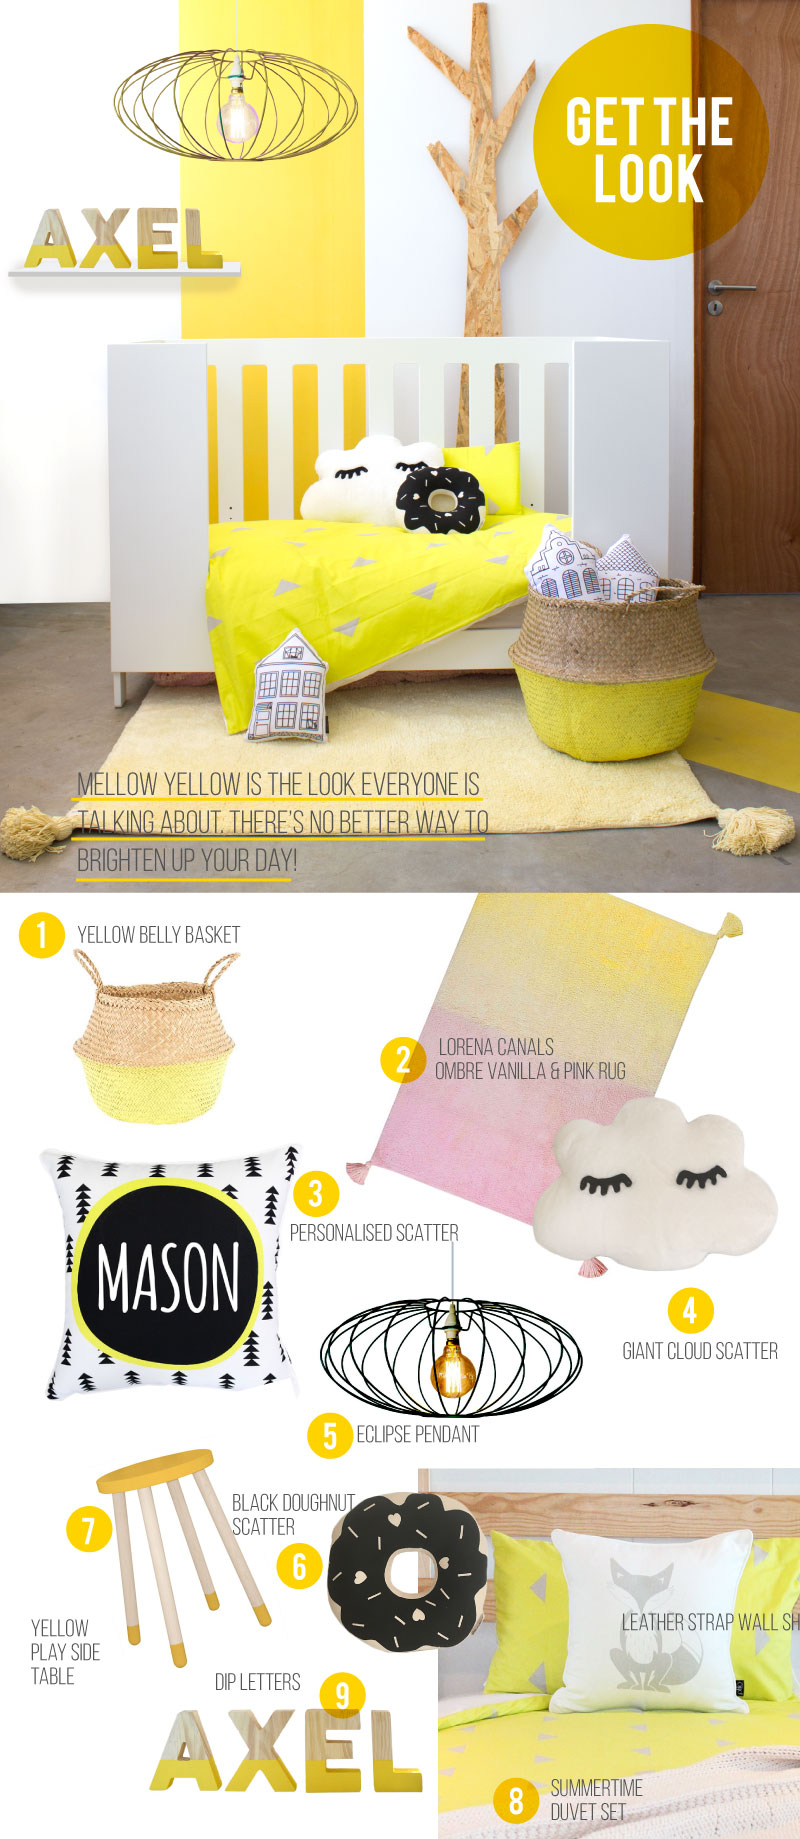 Get the look Mellow Yellow Nursery Decor Clever Little Monekey